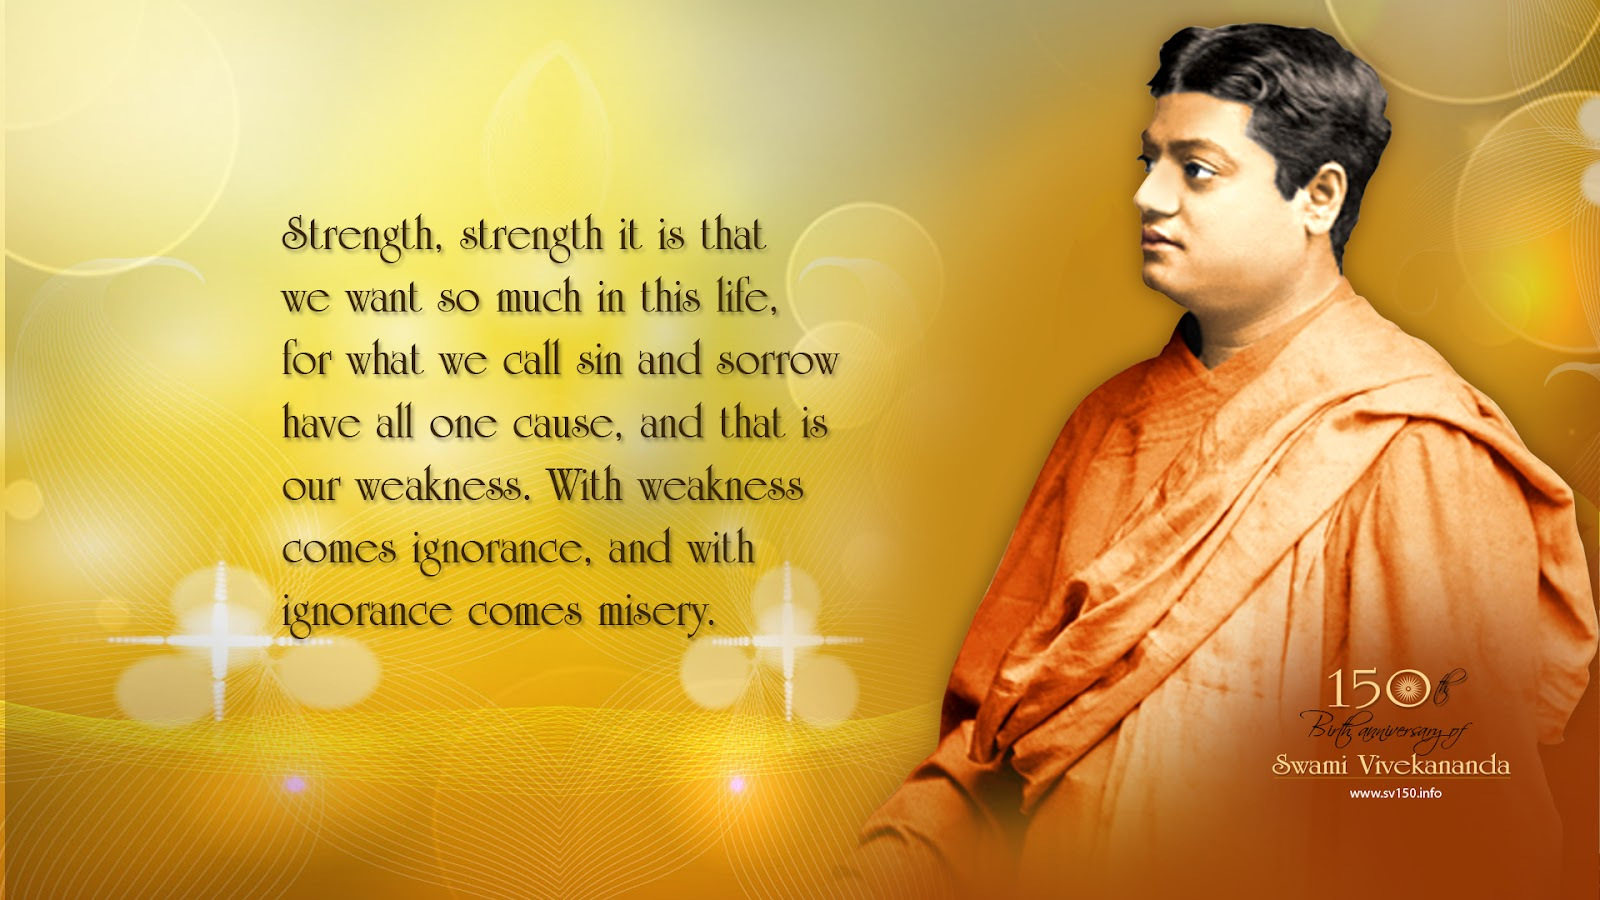 swami vivekananda inspire wallpapers download spoon